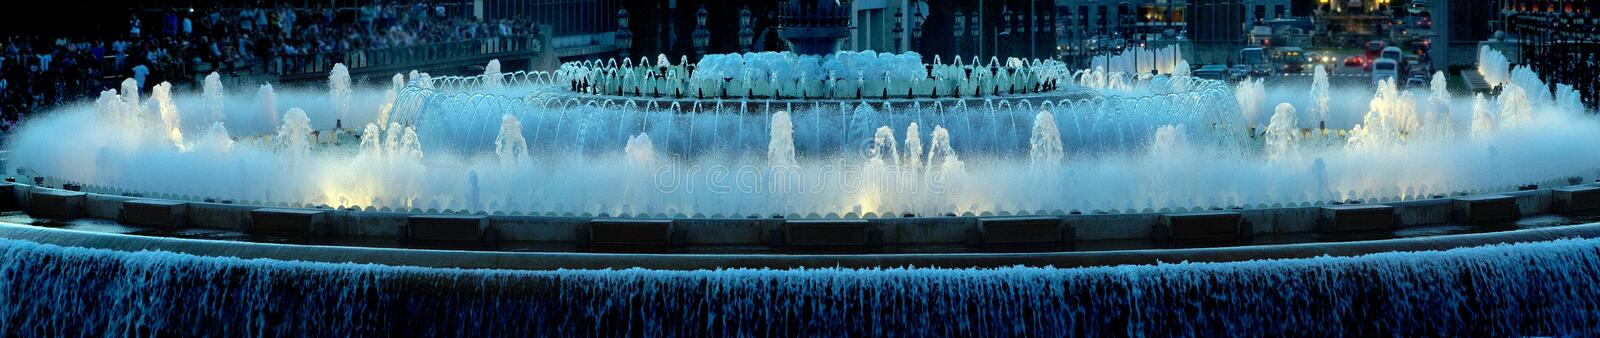 Fontaine de panorama à Barcelone images stock